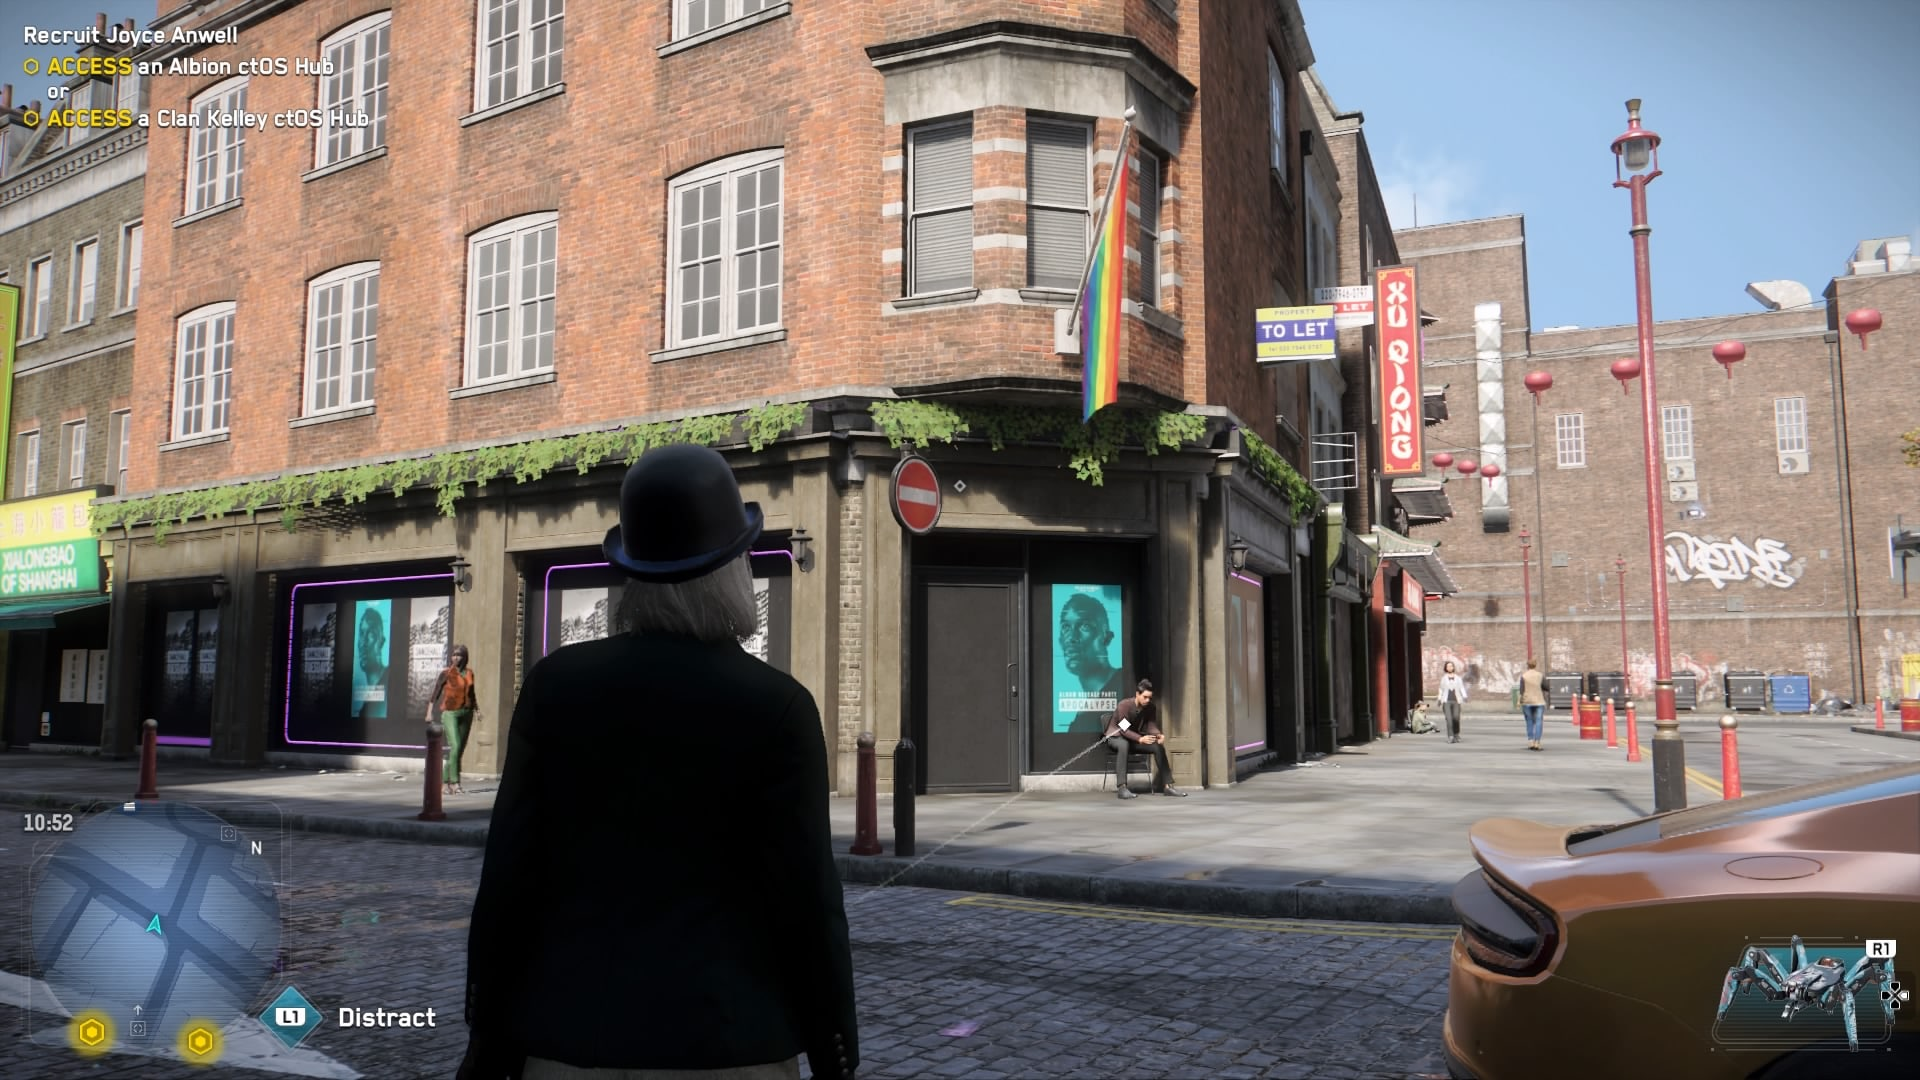 Watch Dogs: Legion is notably LGBT+ inclusive, featuring rainbow flags in place of several real-life London LGBT+ venues